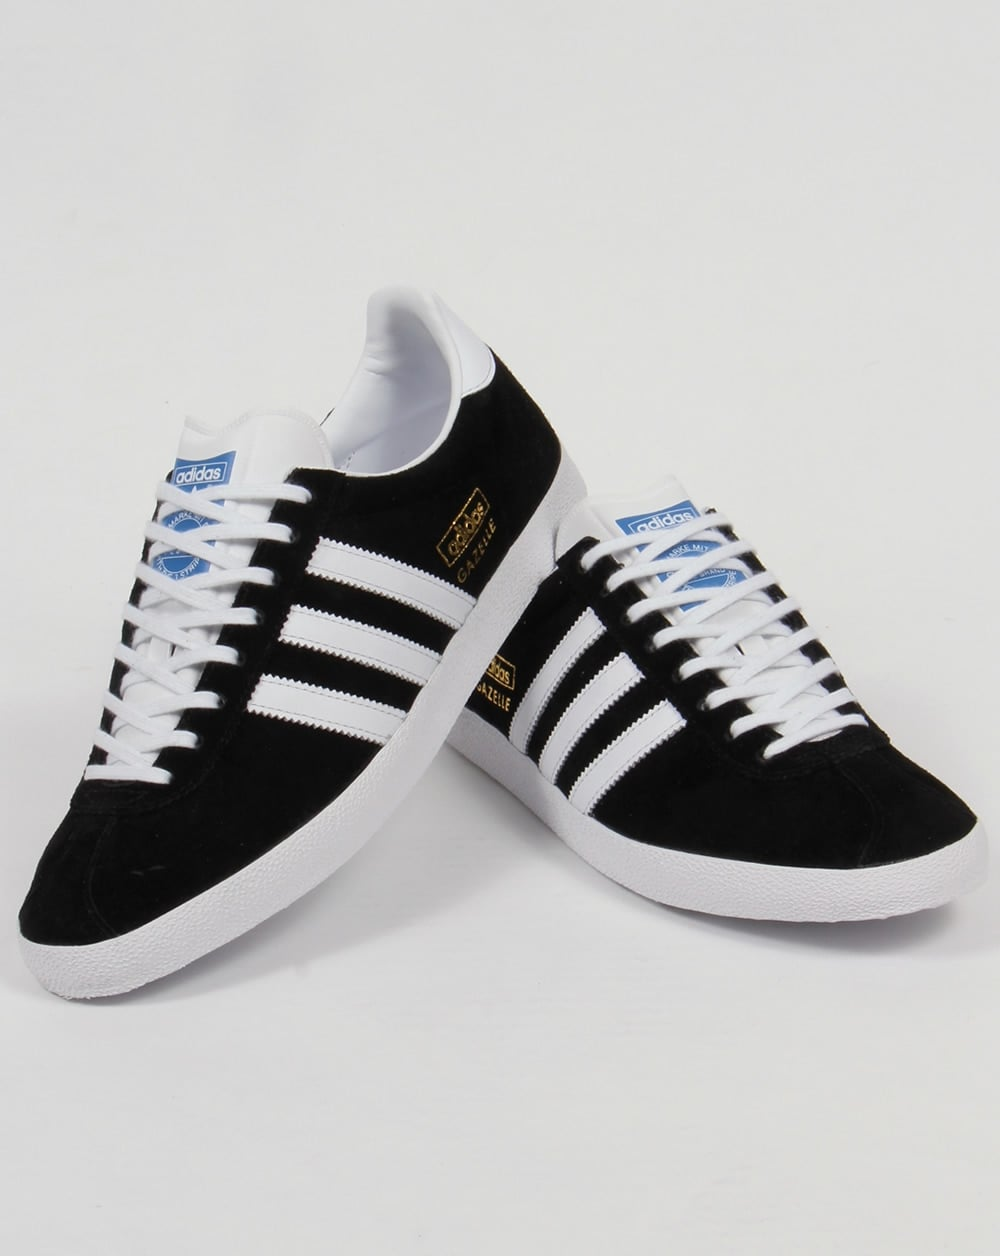 Adidas Originals Gazelle OG Black Casual Shoes  Men